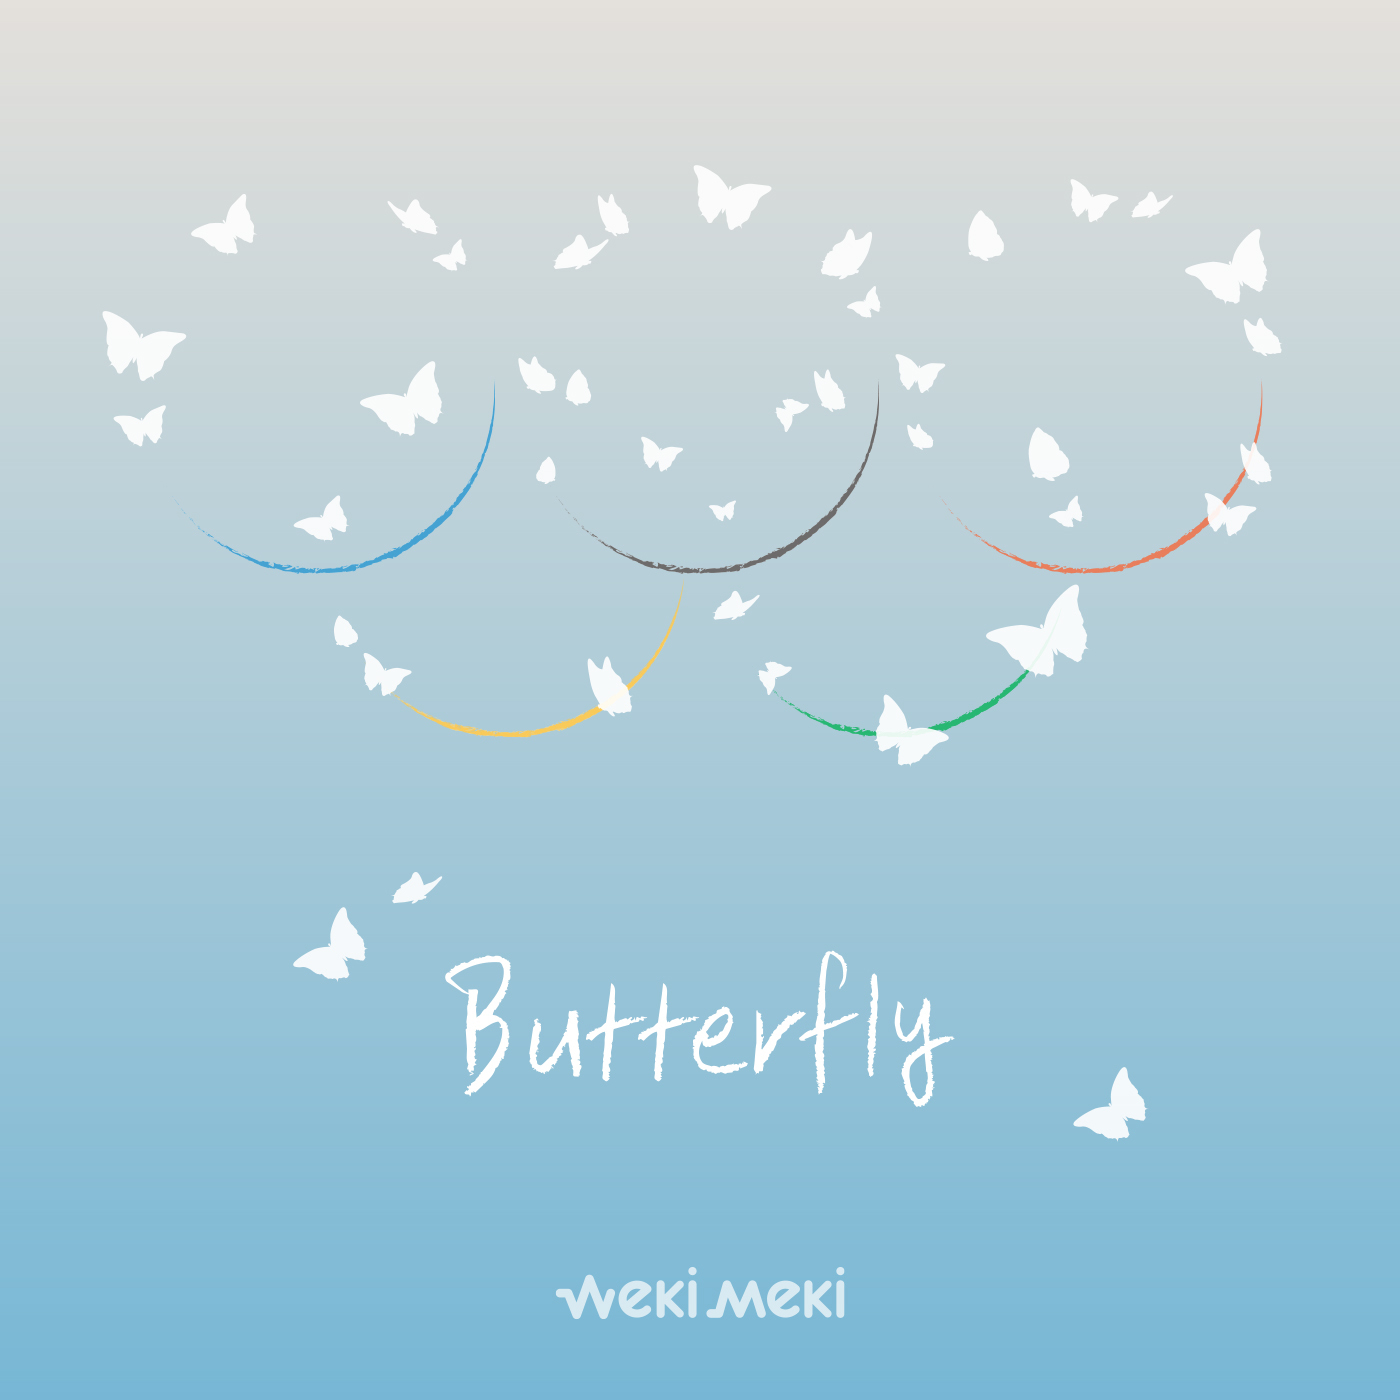 Butterfly (2018 PyeongChang Winter Olympics Special)